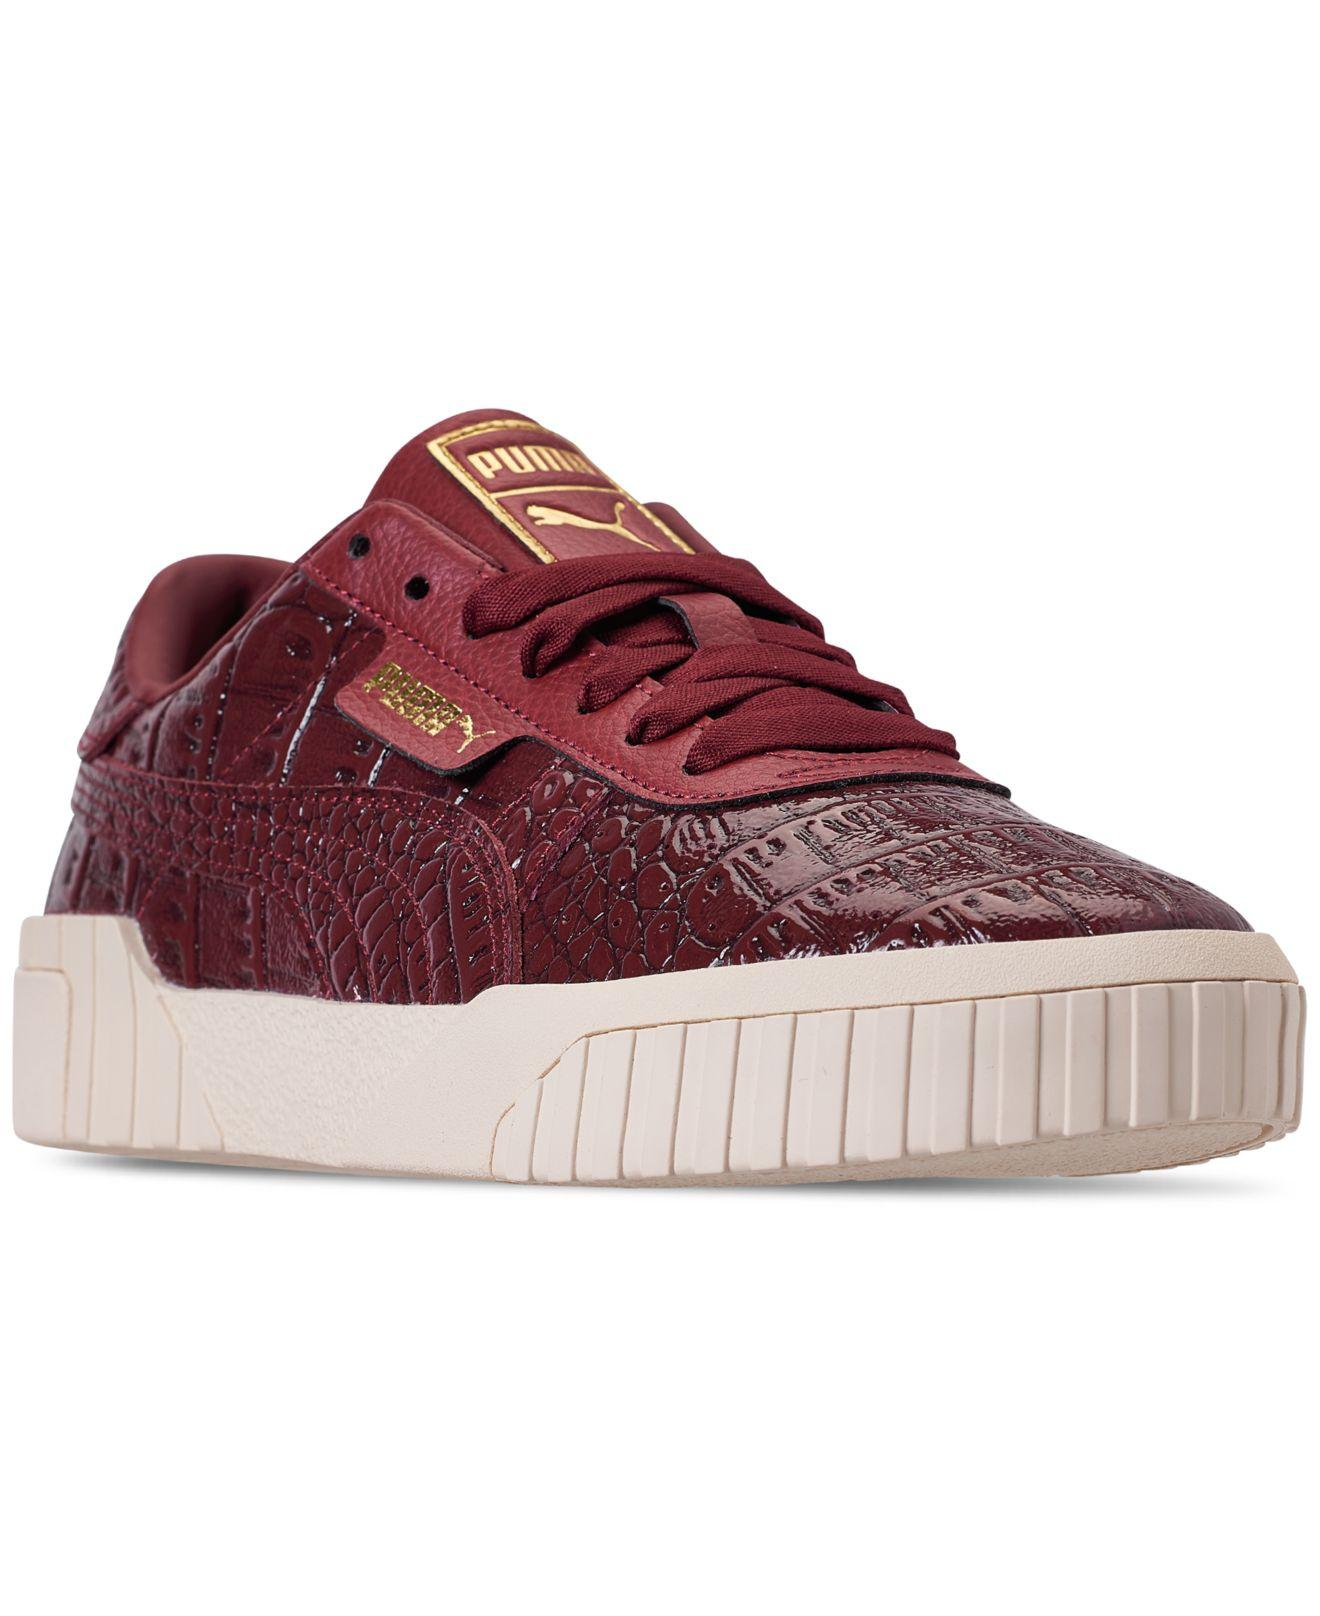 Lyst - PUMA California Croc Casual Sneakers From Finish Line in Red 791b93e8a